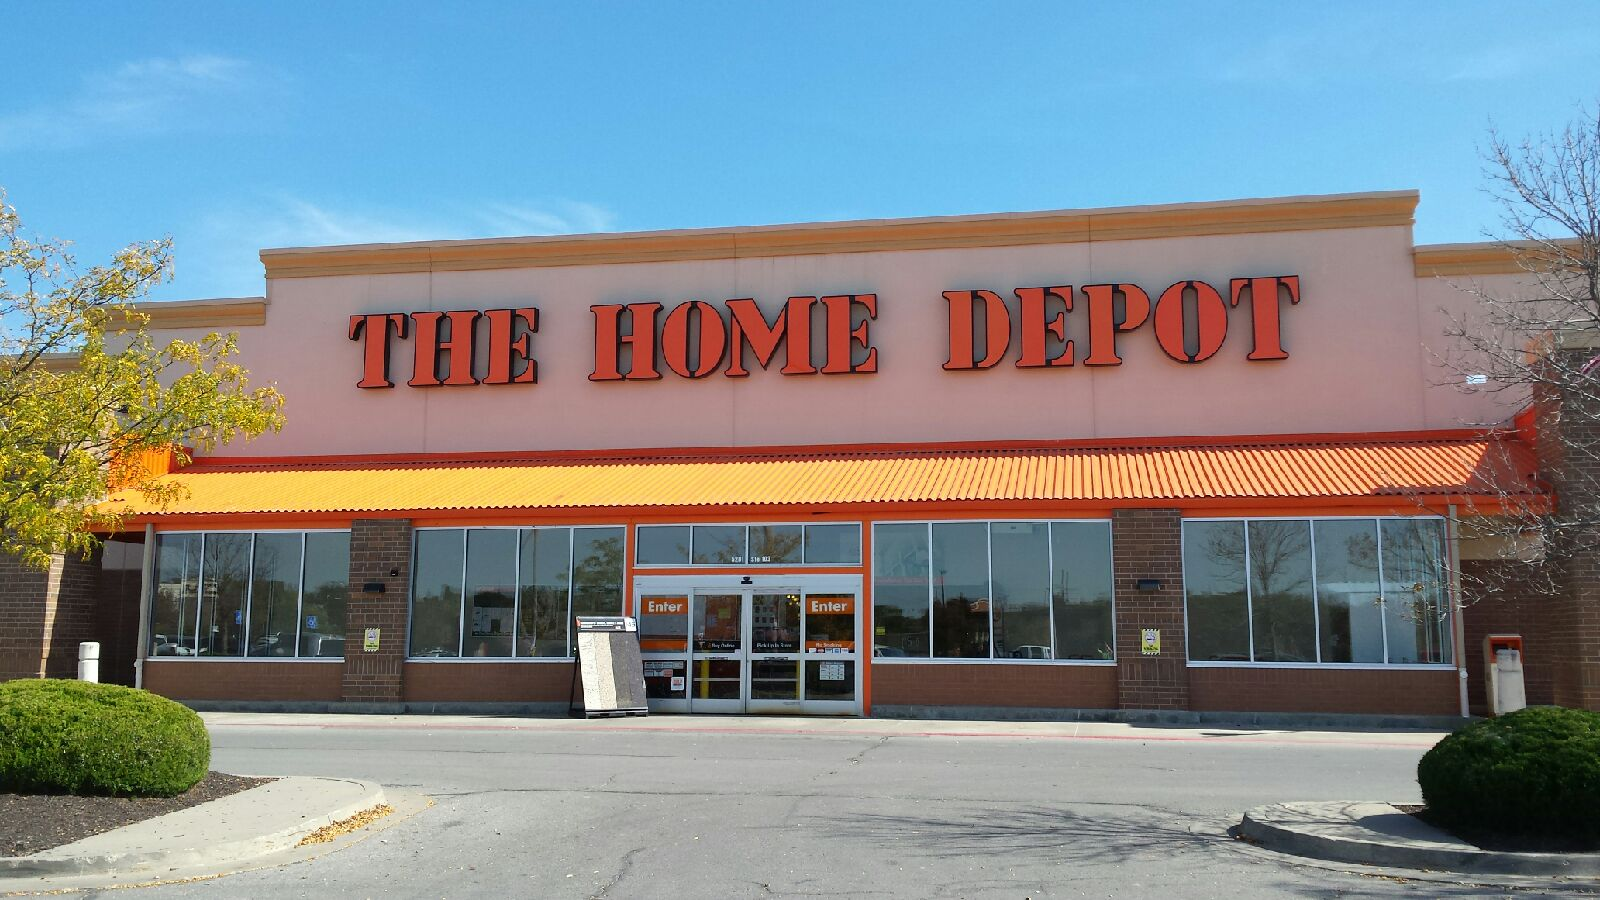 the home depot in saint joseph mo 64506. Black Bedroom Furniture Sets. Home Design Ideas